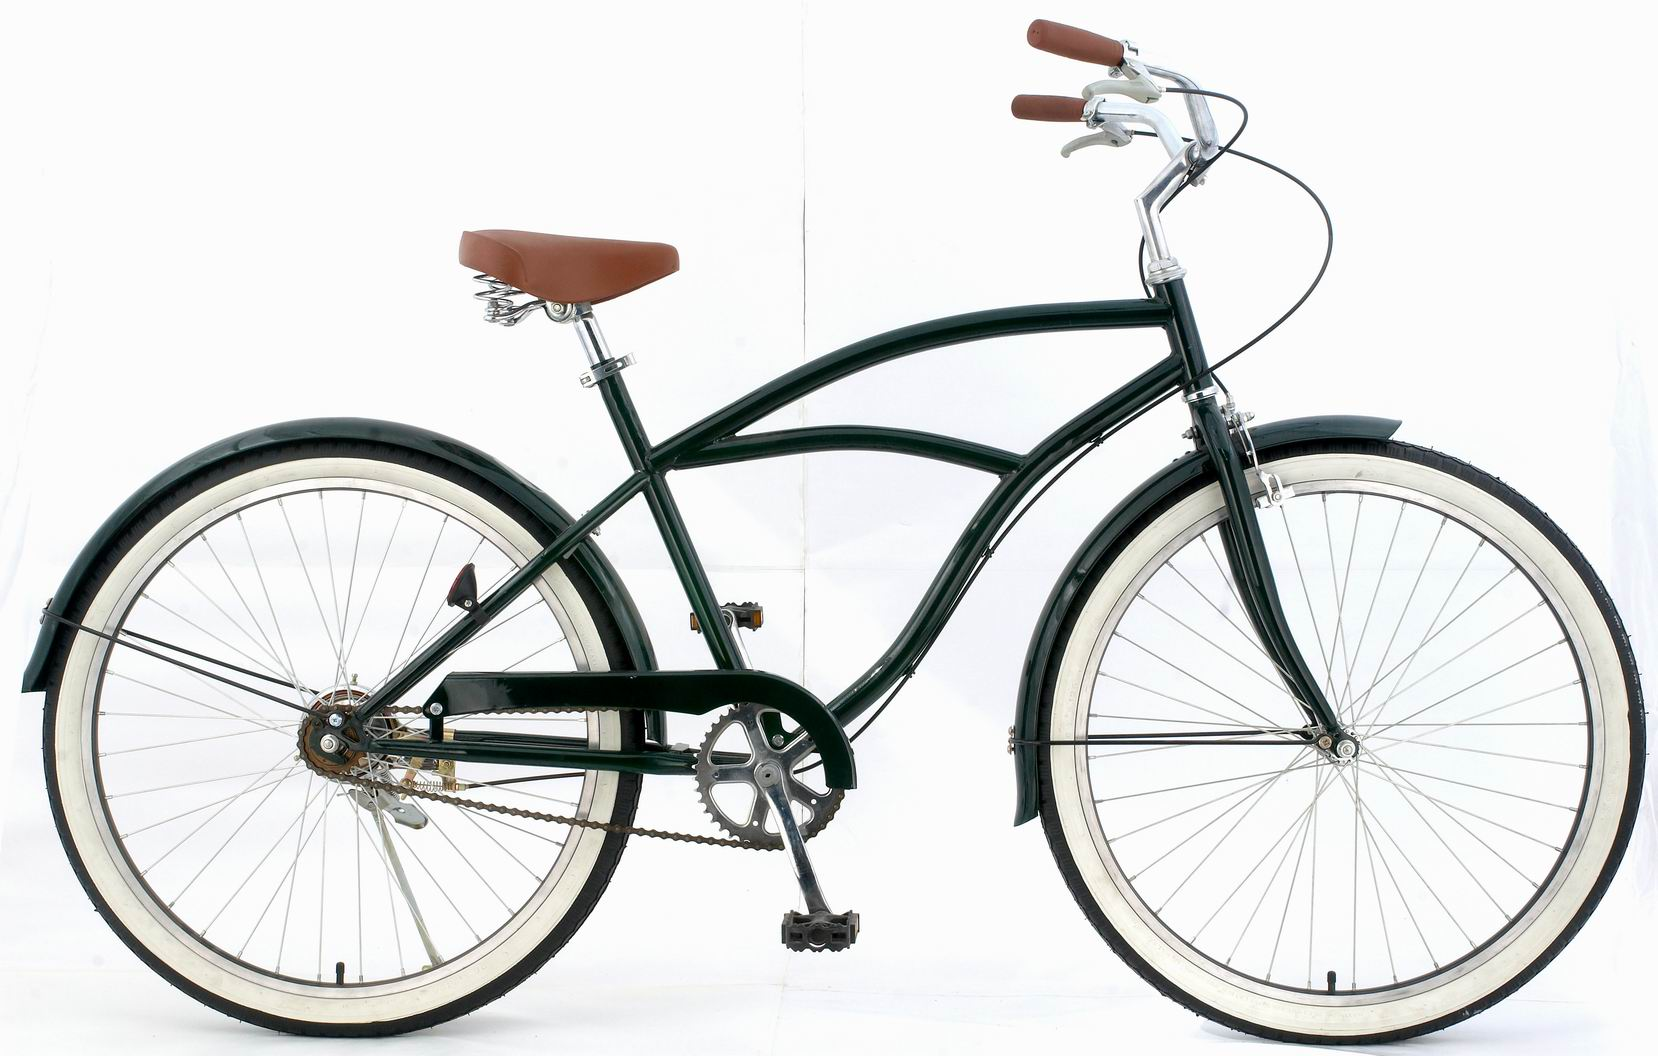 Cruiser – types of bicycle